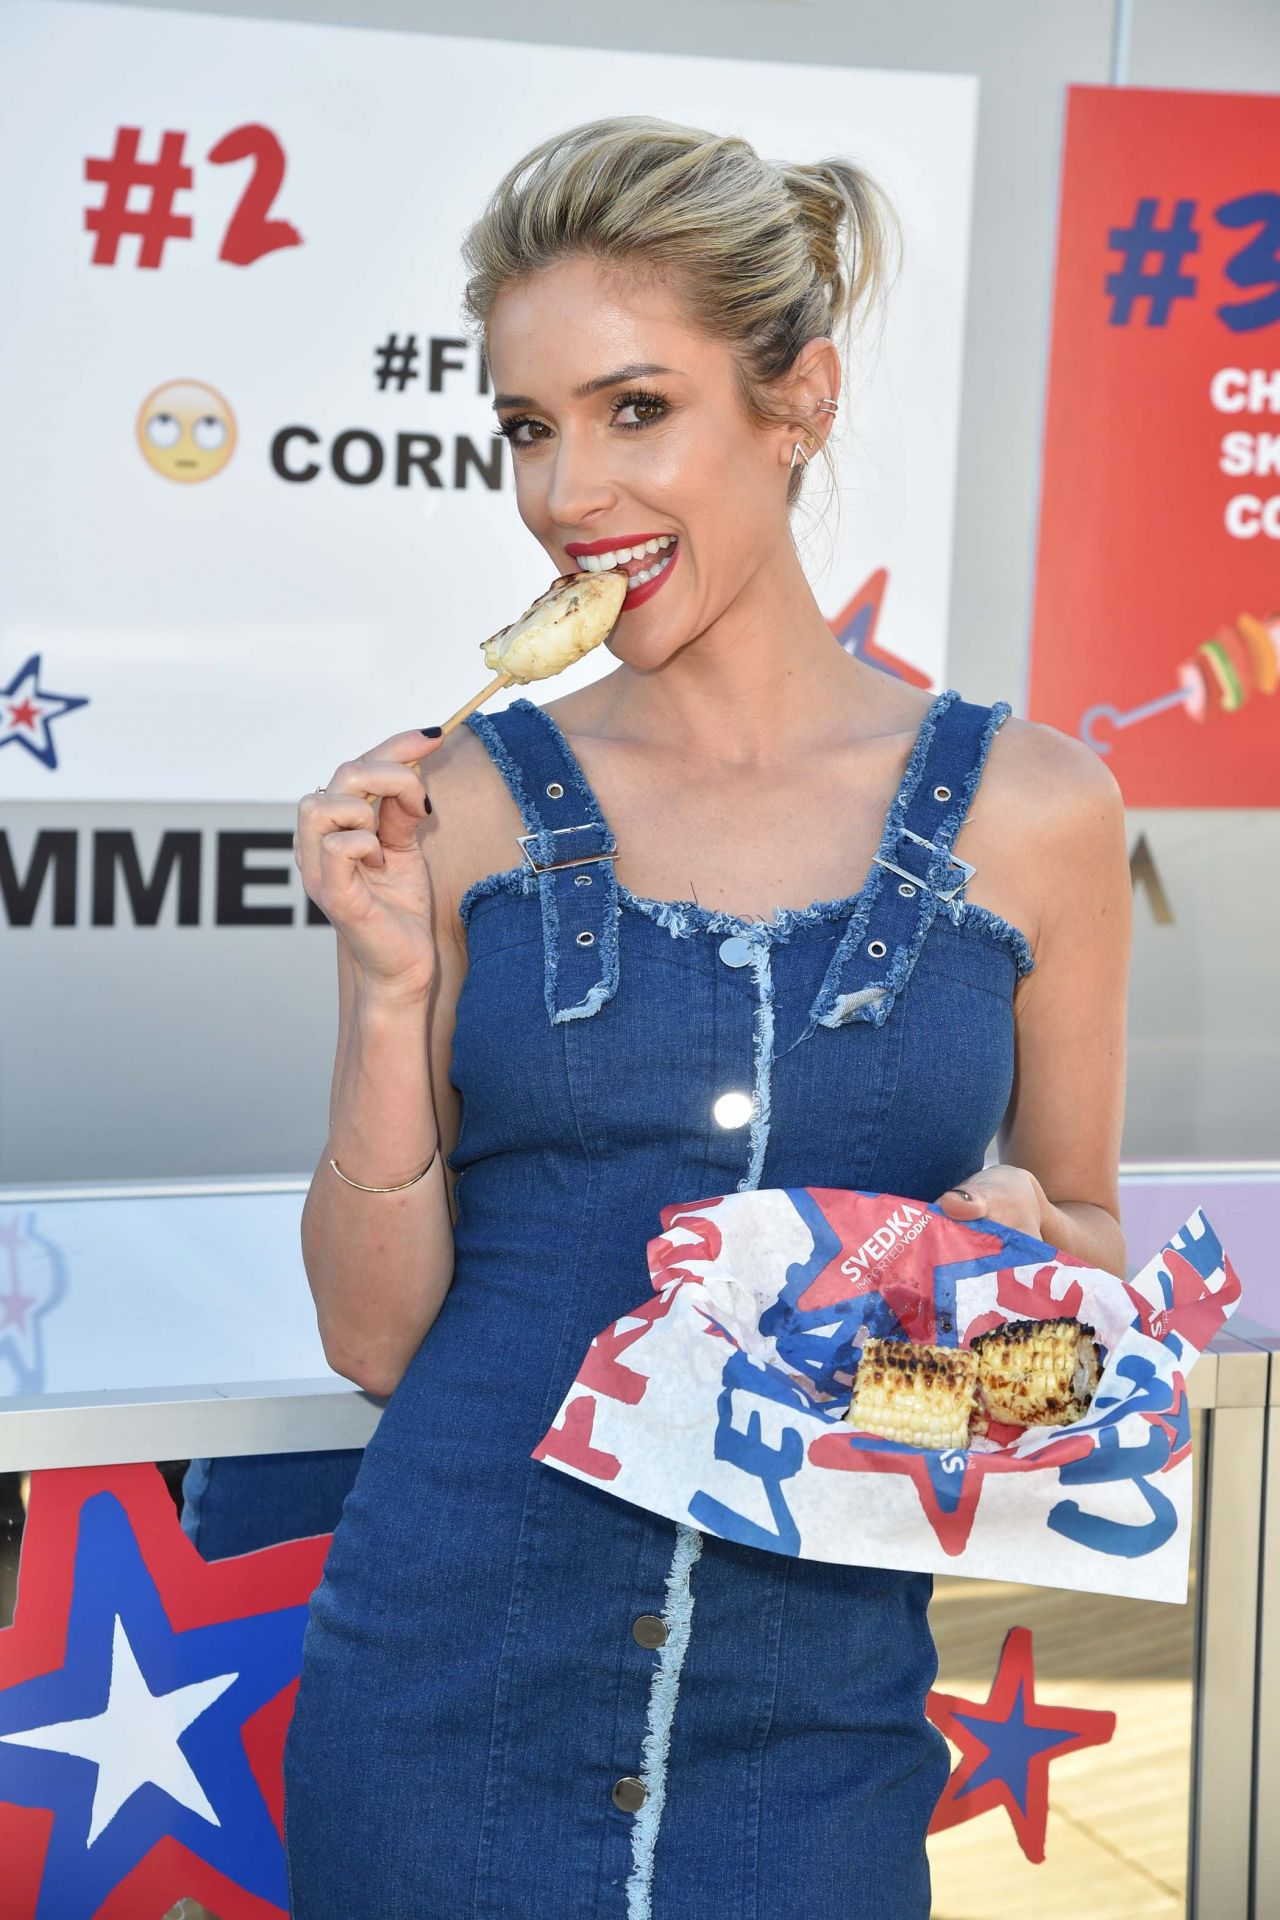 Kristin Cavallari gorgeous in short denim dress at Svedka BBQ in LA